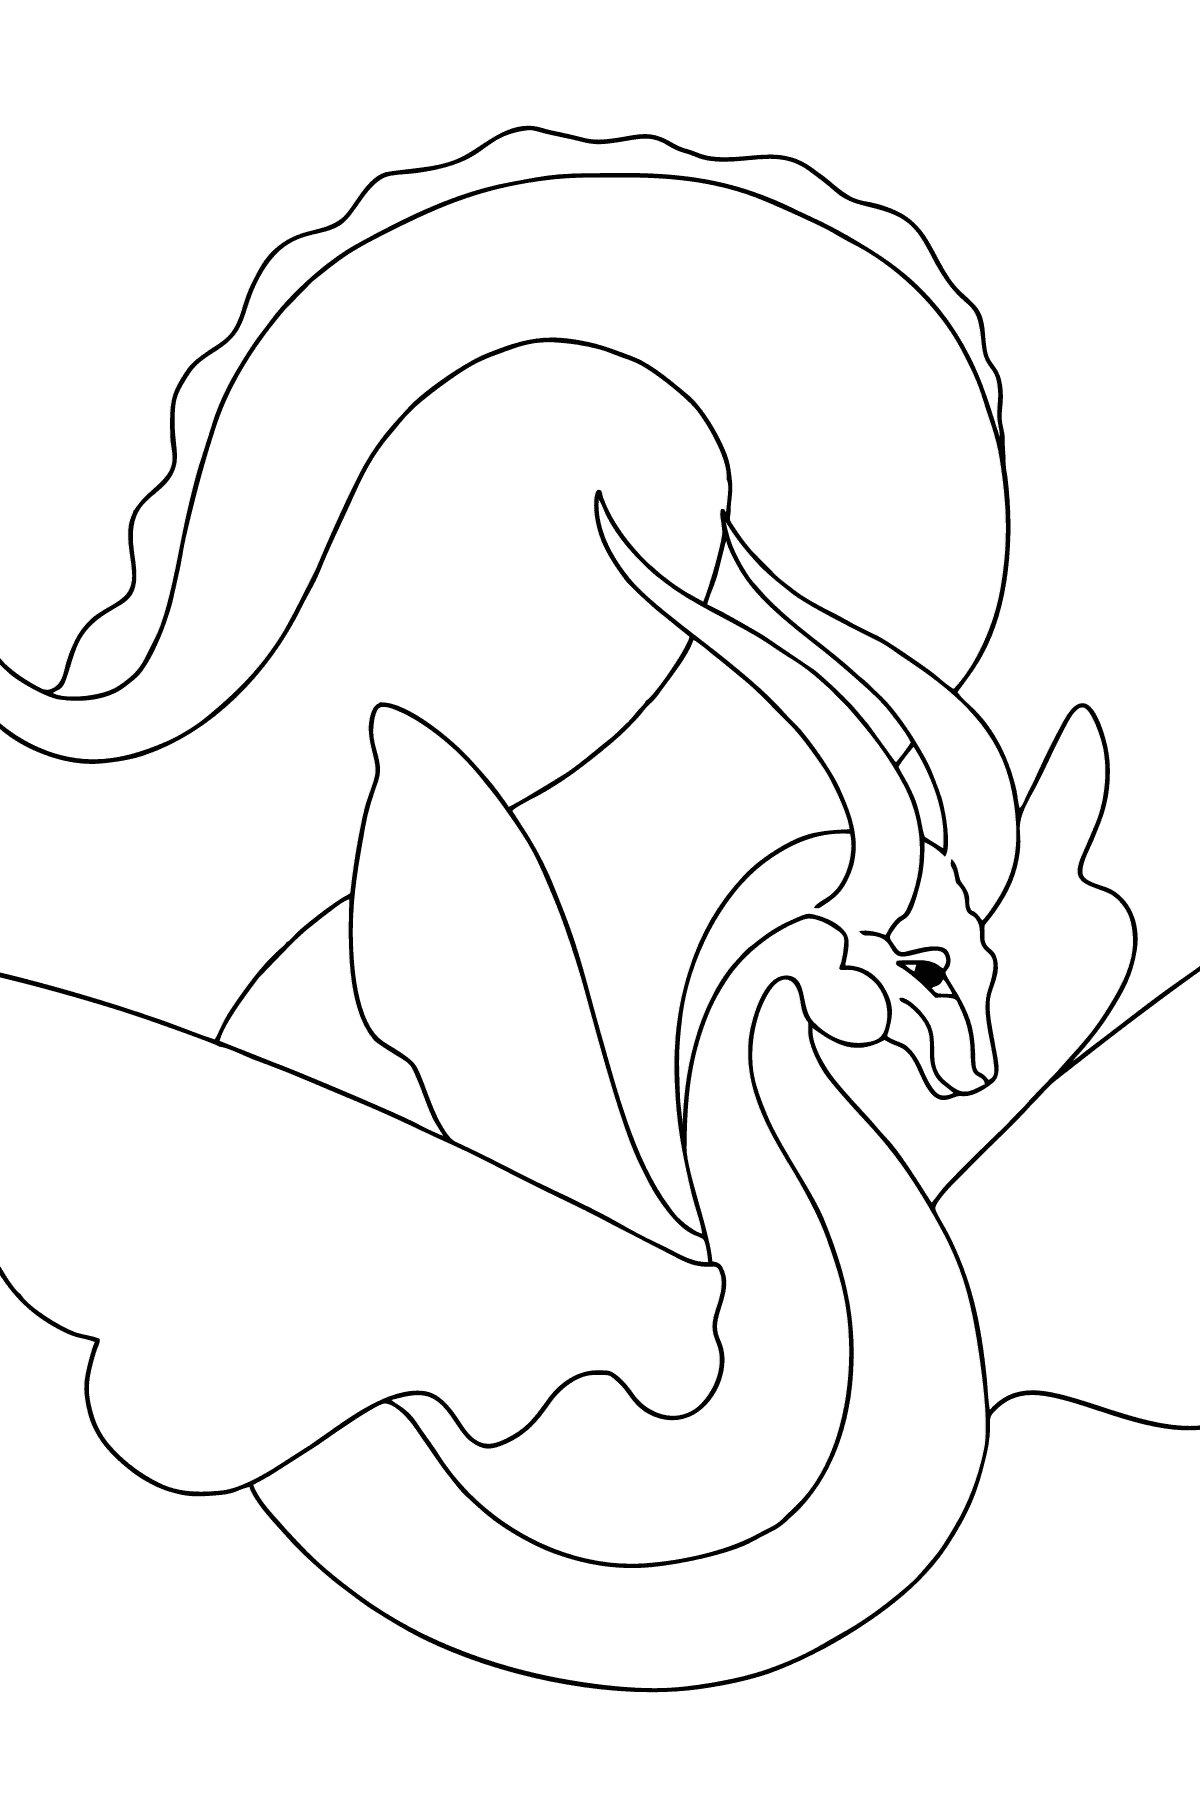 Coloring Page - A Dragon with an Orange Tail - Coloring Pages for Kids